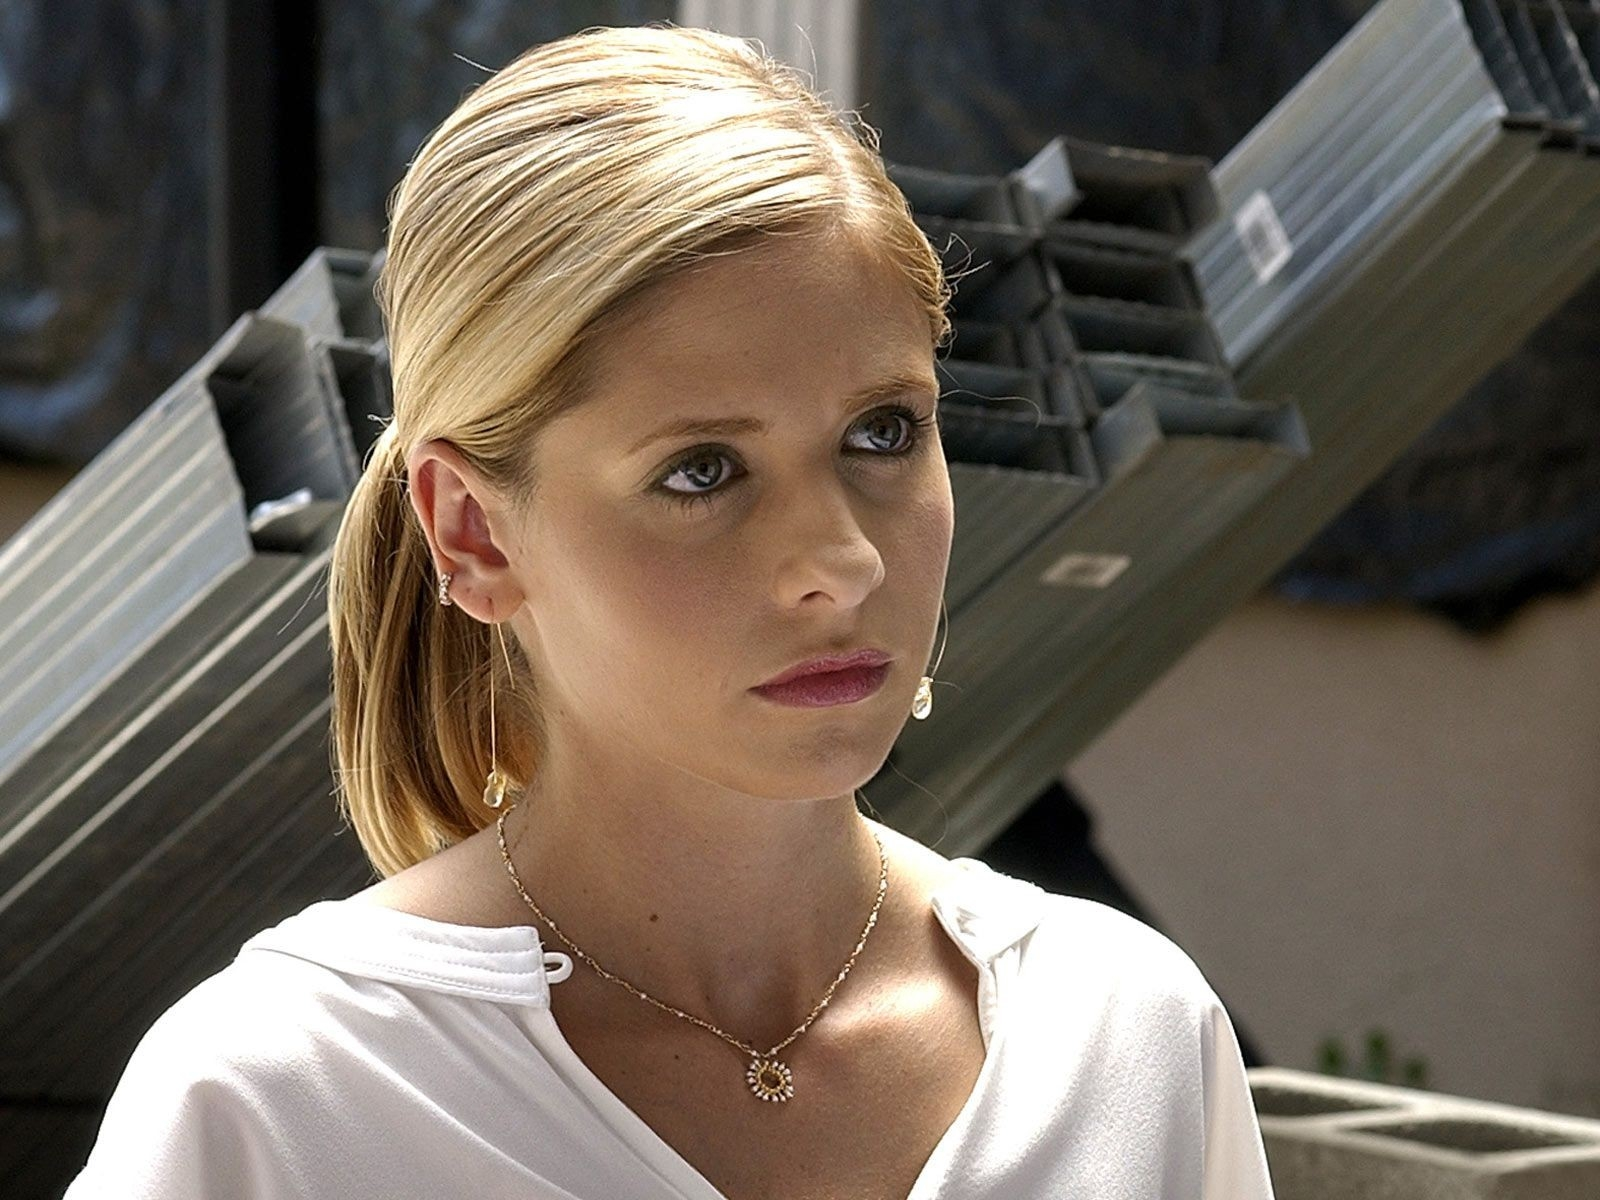 Wallpaper di Sarah M.Gellar